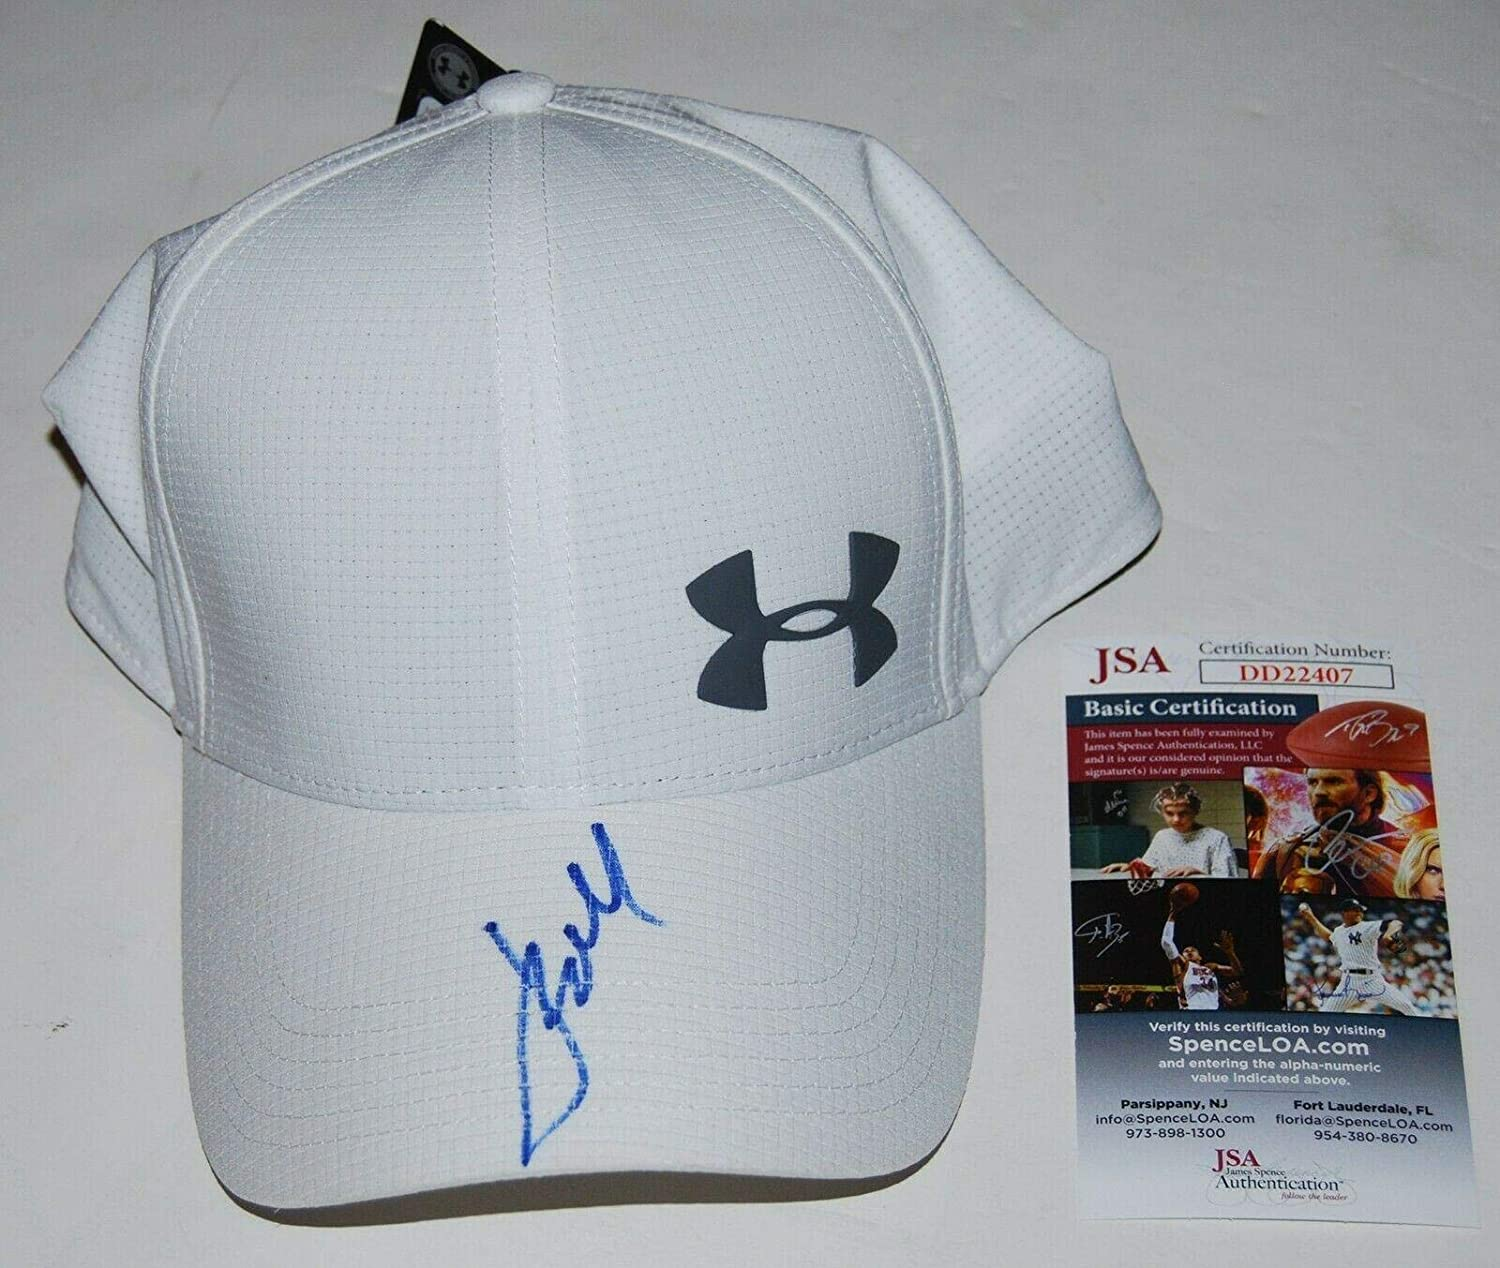 aee64ea8 JORDAN SPIETH signed (UNDER ARMOUR) White Golf hat cap Authenticated #1 -  JSA Certified - Autographed Golf Equipment at Amazon's Sports Collectibles  Store